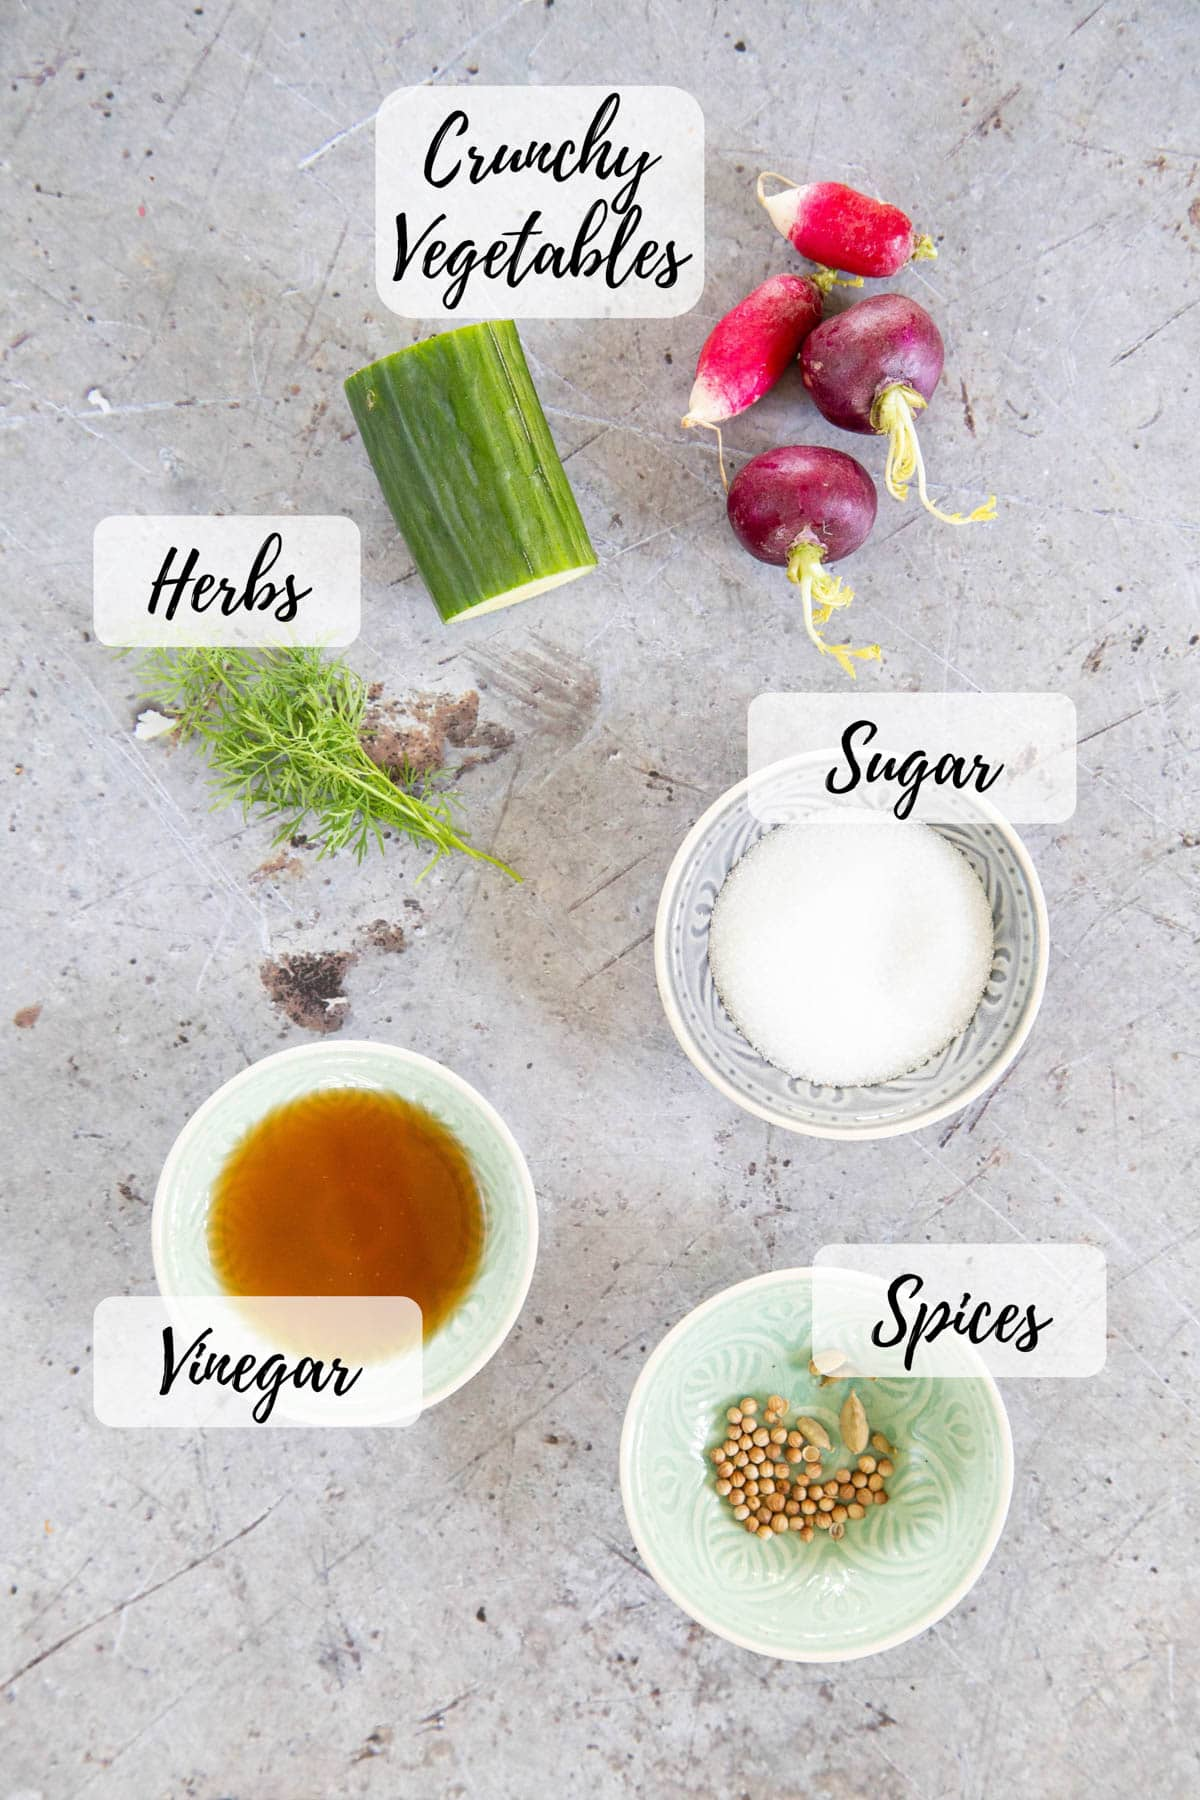 An annotated top down picture of the ingredients for quick pickles: Vegetables, sugar, vinegar, herbs, spices